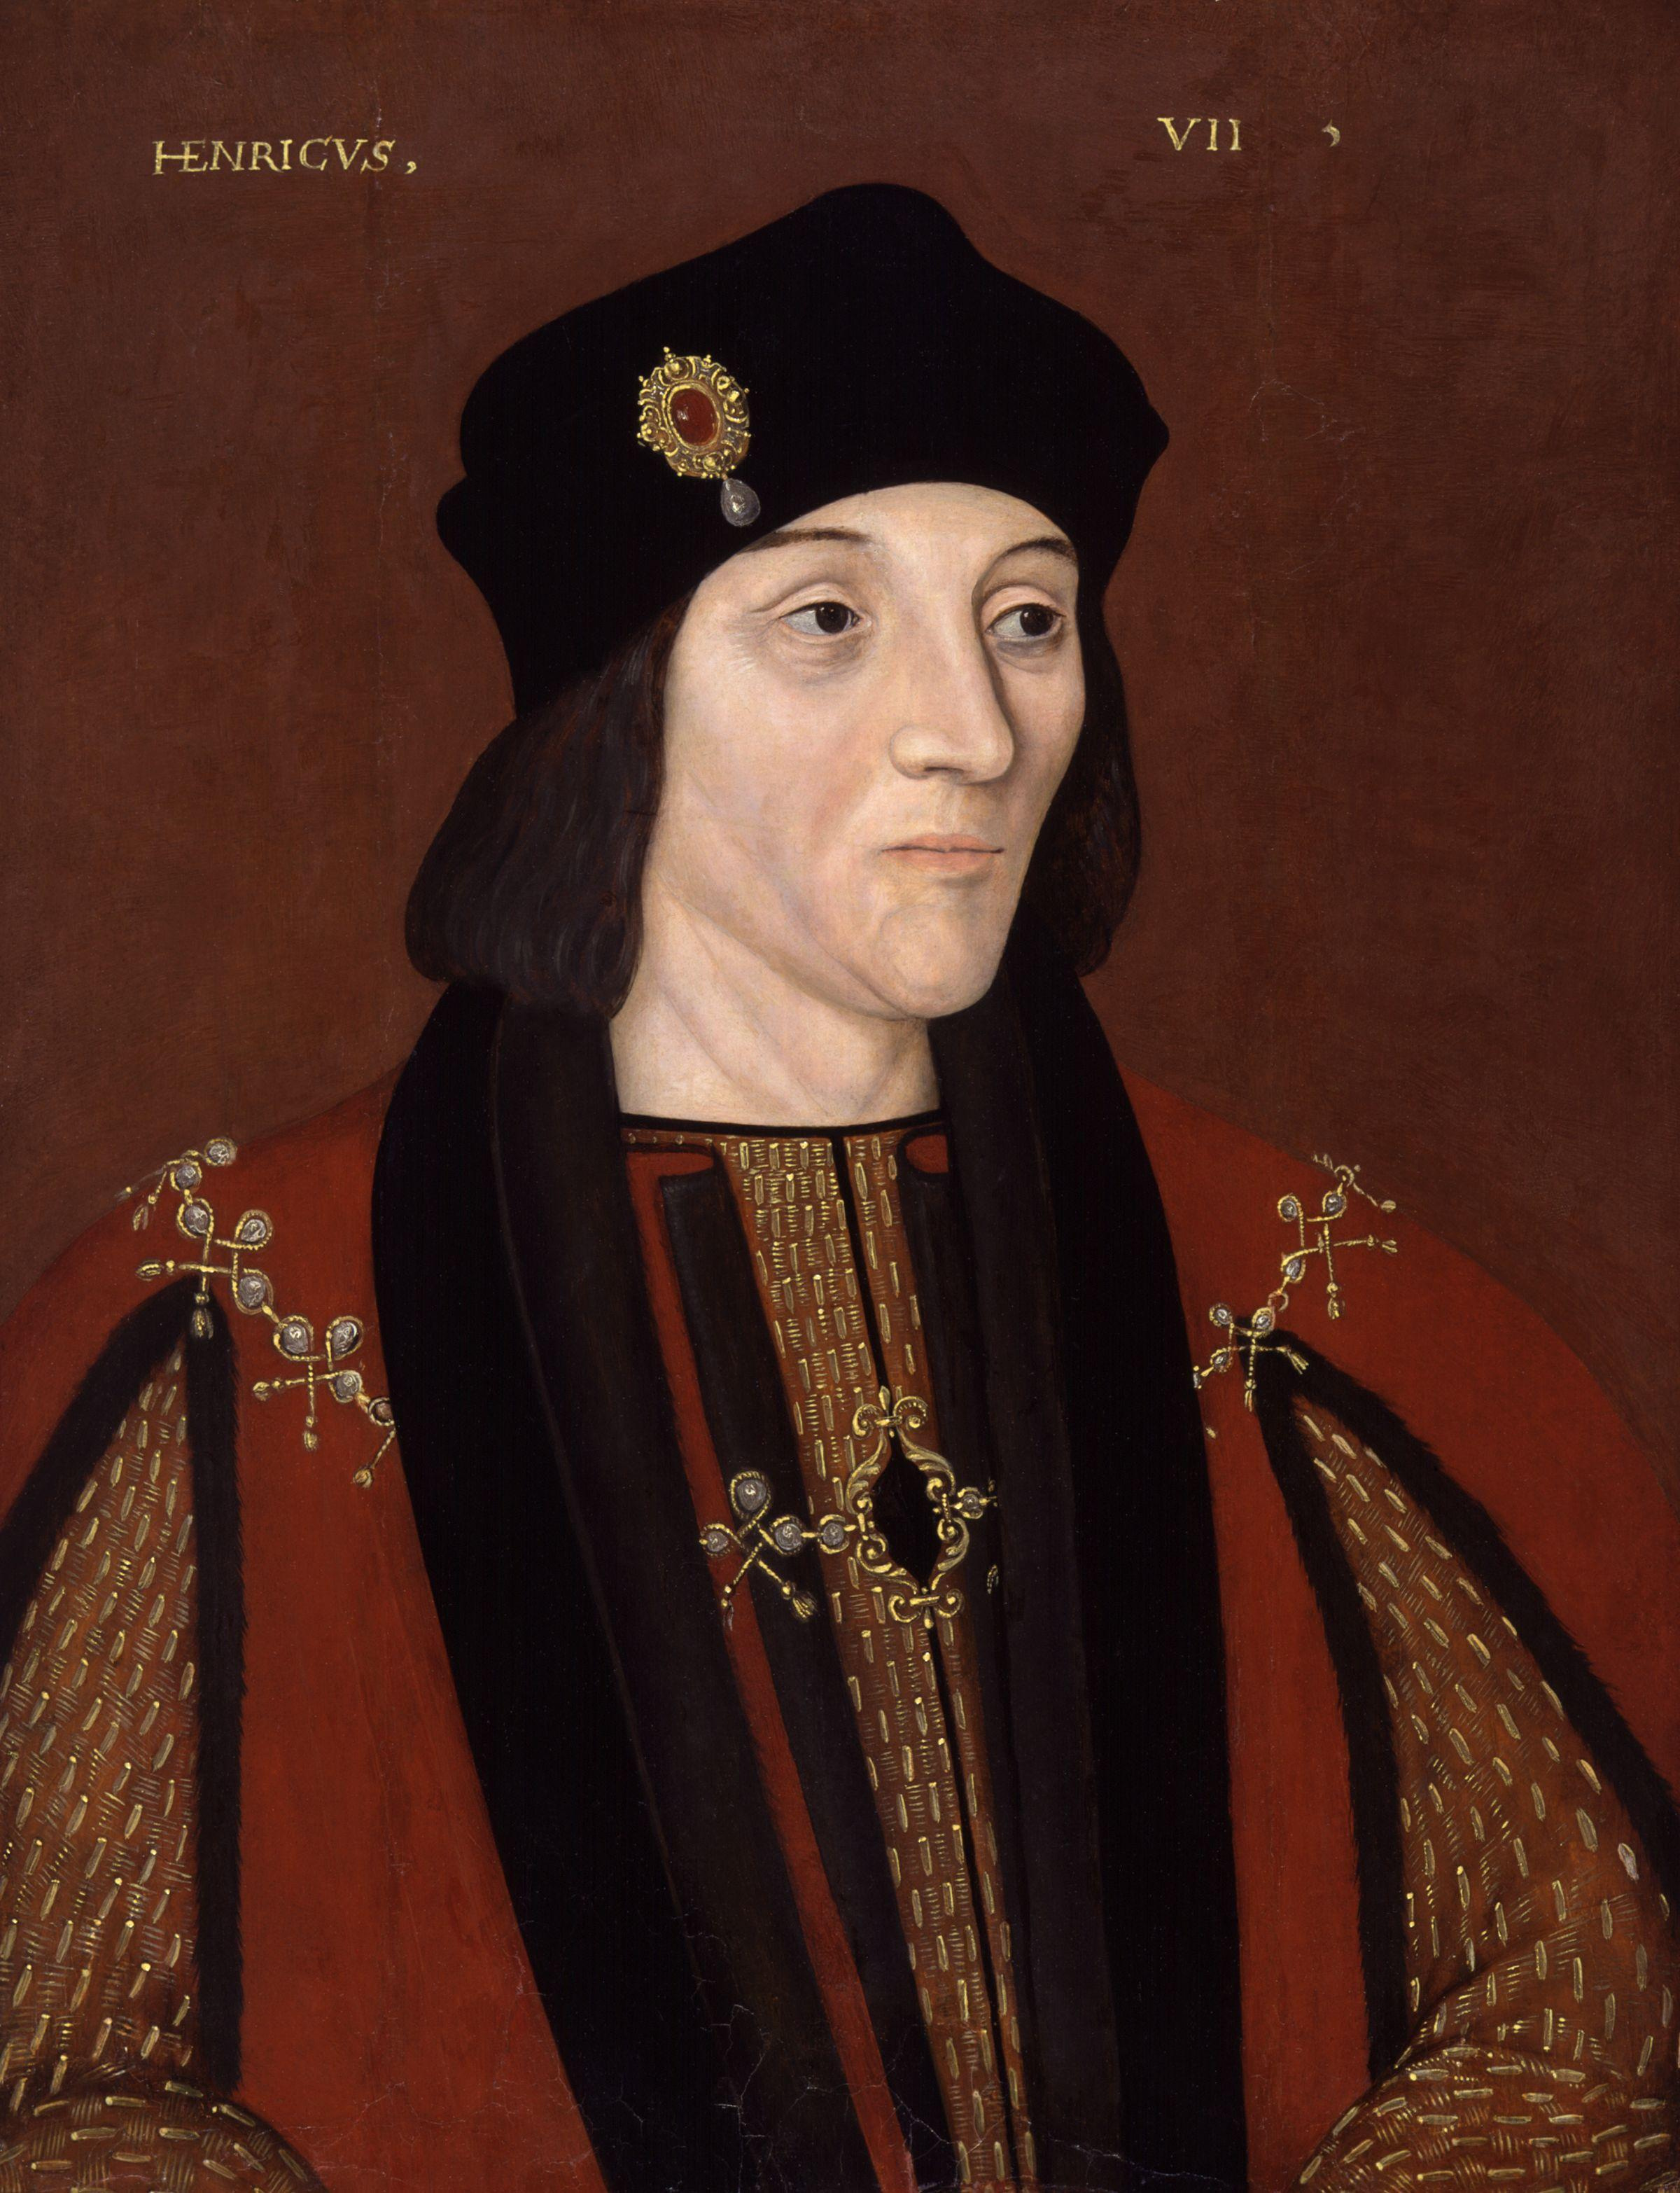 Late 16th-century copy of a portrait of Henry VII by an unknown artist.. Purchased in 1974 by the National Portrait Gallery and currently on display at the Museum of Fine Arts in Houston, Texas.